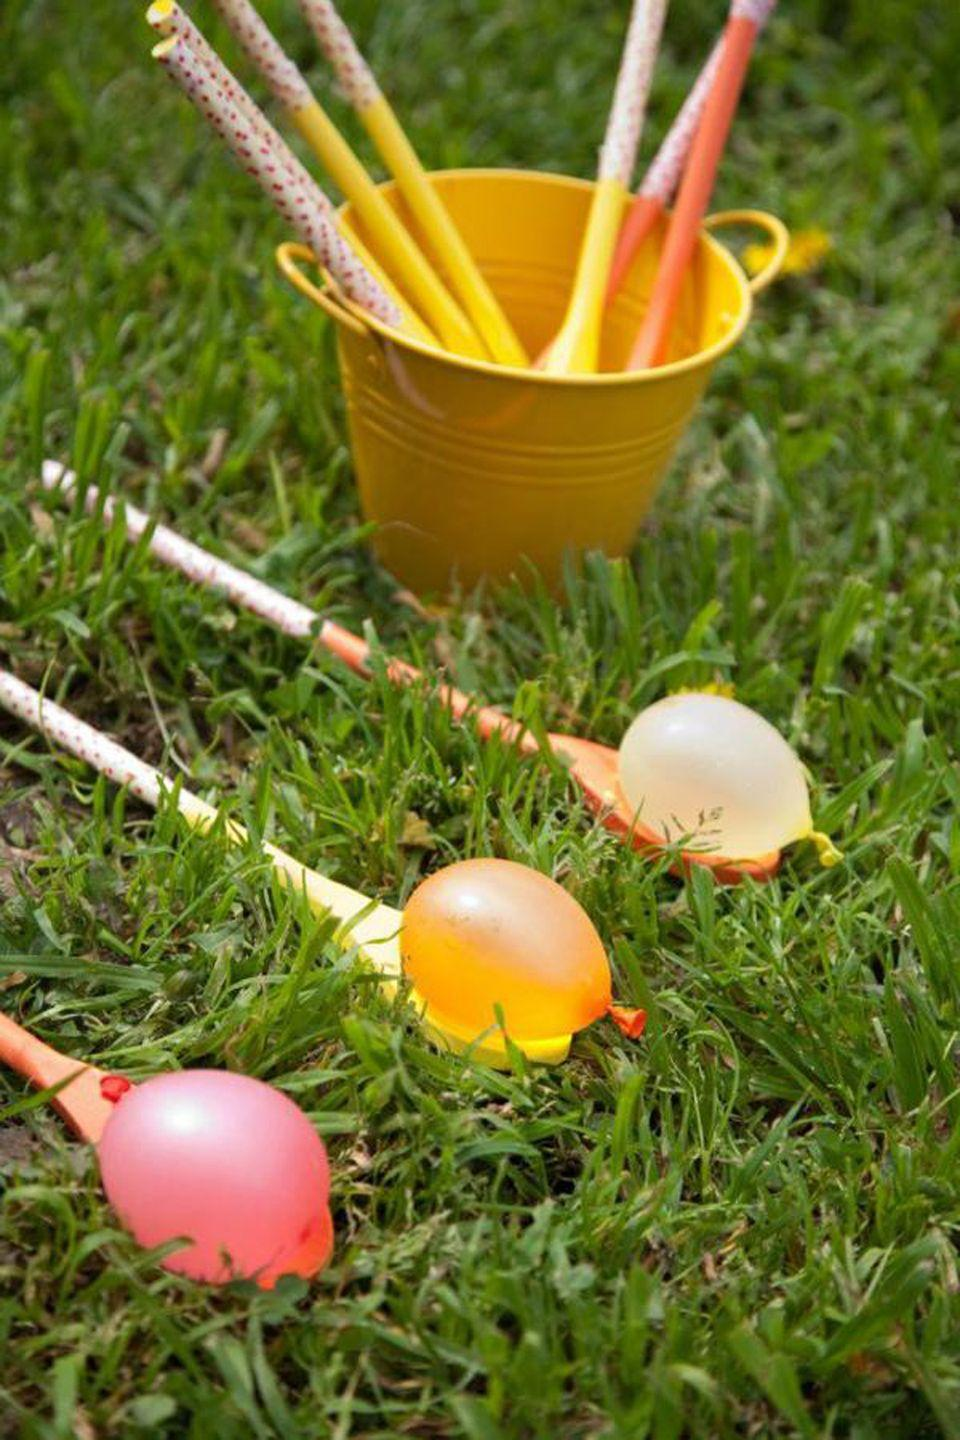 "<p>Customize this activity for the weather on your holiday—you can host a classic race with real or plastic eggs, or use tiny water balloons if it's warm enough outside. </p><p><strong>Get the tutorial at <a href=""http://karaspartyideas.com/2013/03/gender-neutral-spring-soiree-1st-birthday-party.html"" rel=""nofollow noopener"" target=""_blank"" data-ylk=""slk:Kara's Party Ideas"" class=""link rapid-noclick-resp"">Kara's Party Ideas</a>.</strong></p>"